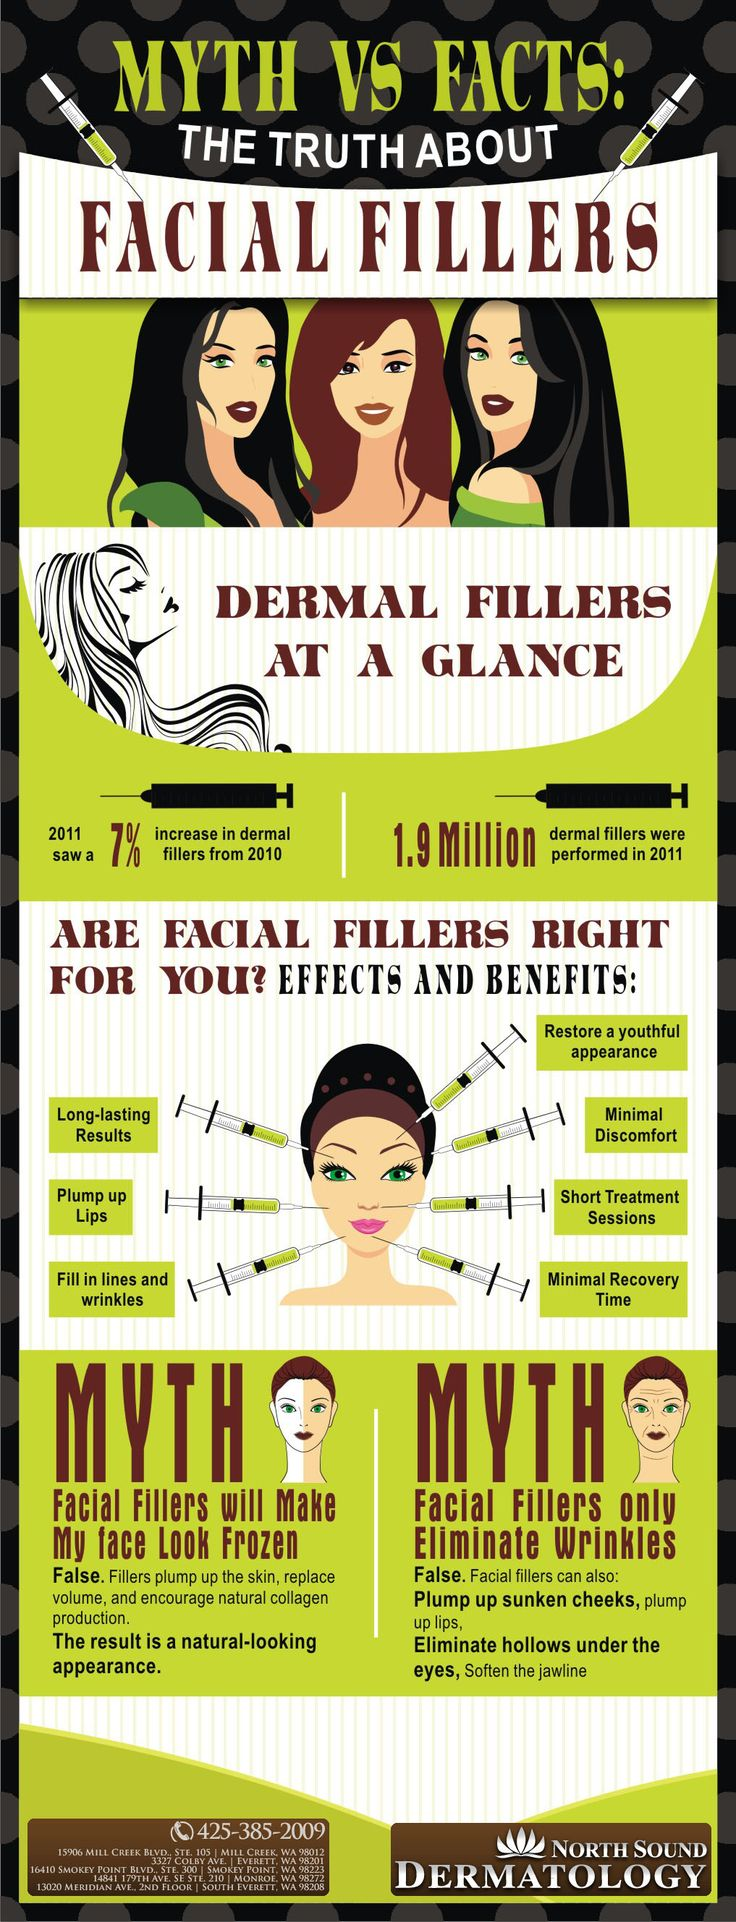 Dermal fillers. Myth vs Fact  creativeimagelasersolutions.com  | Call (248) 855-0900 to make an appointment TODAY!   Luxury Med Spa in Farmington Hills, MI is a GREAT place to pamper yourself!  Call (248) 855-0900 to schedule an appointment or visit our website medicalandspa.com for more information!